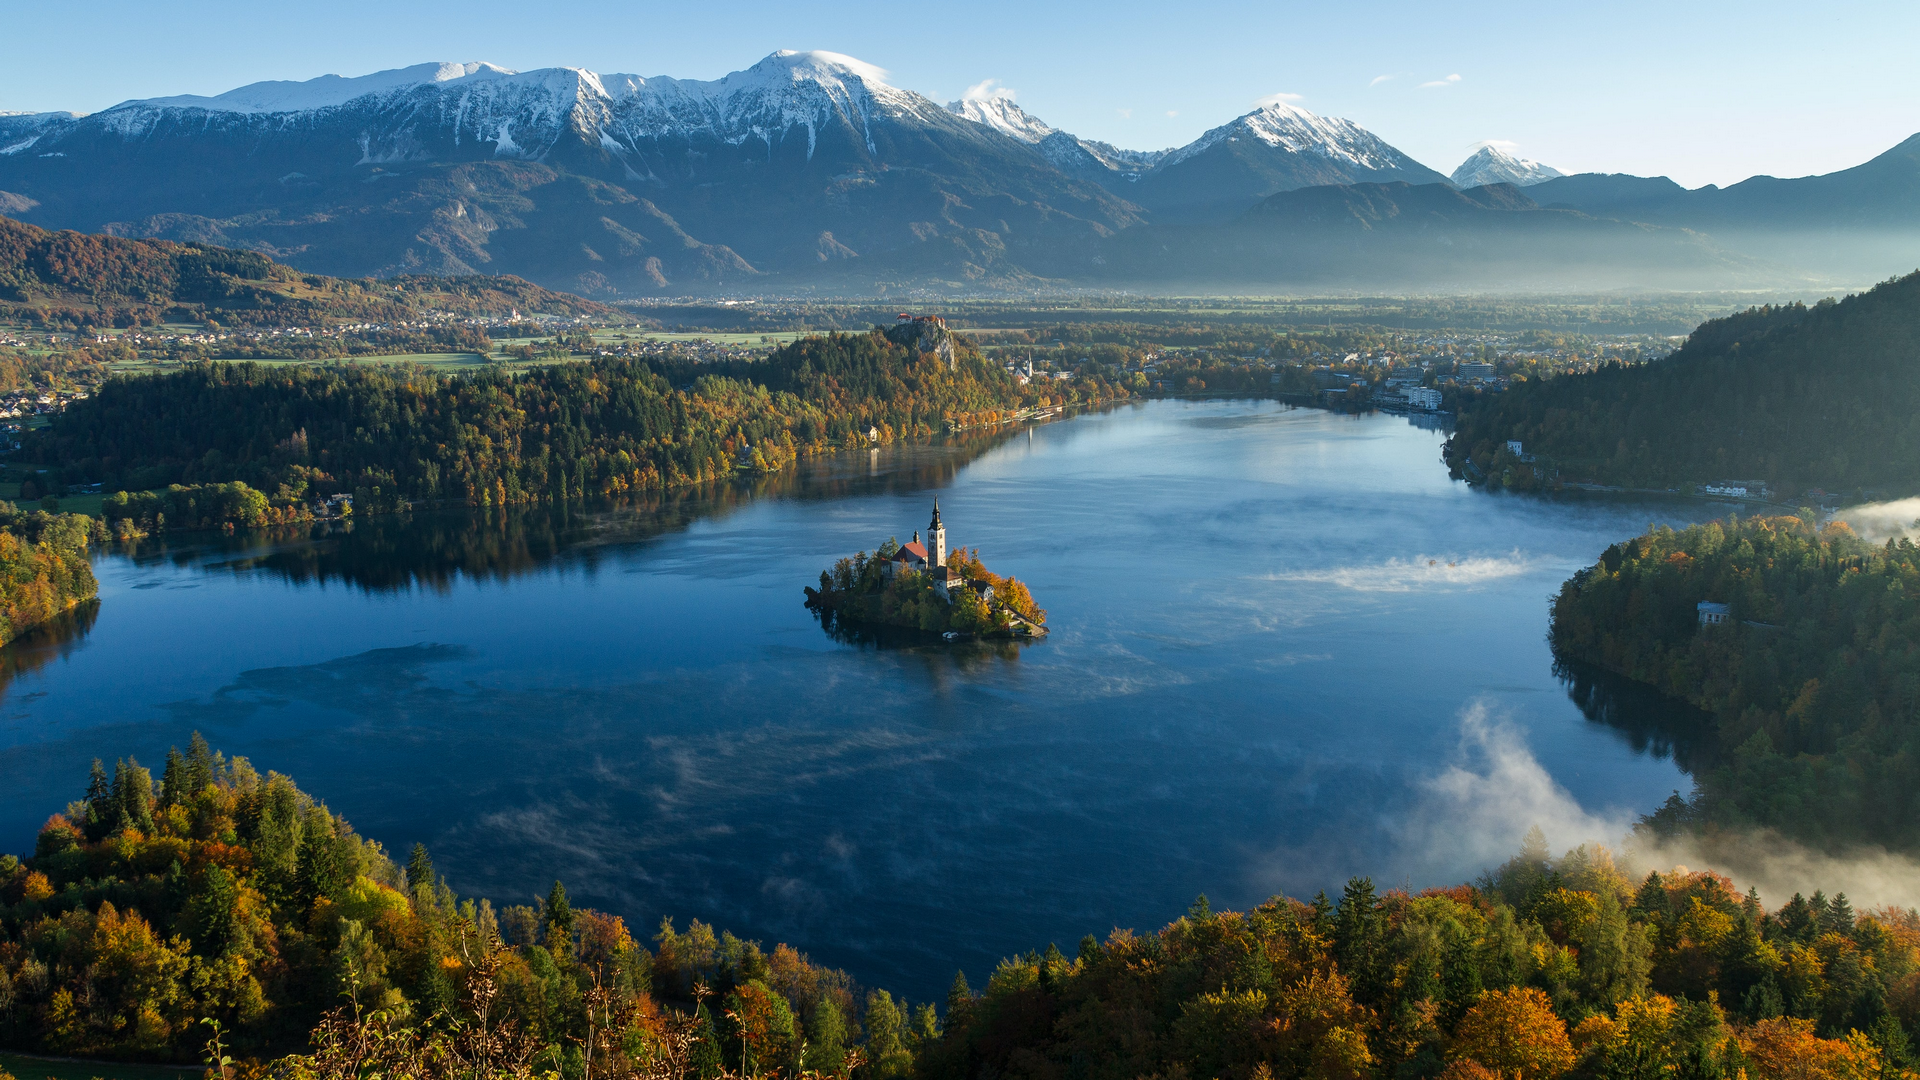 A view in Slovenia